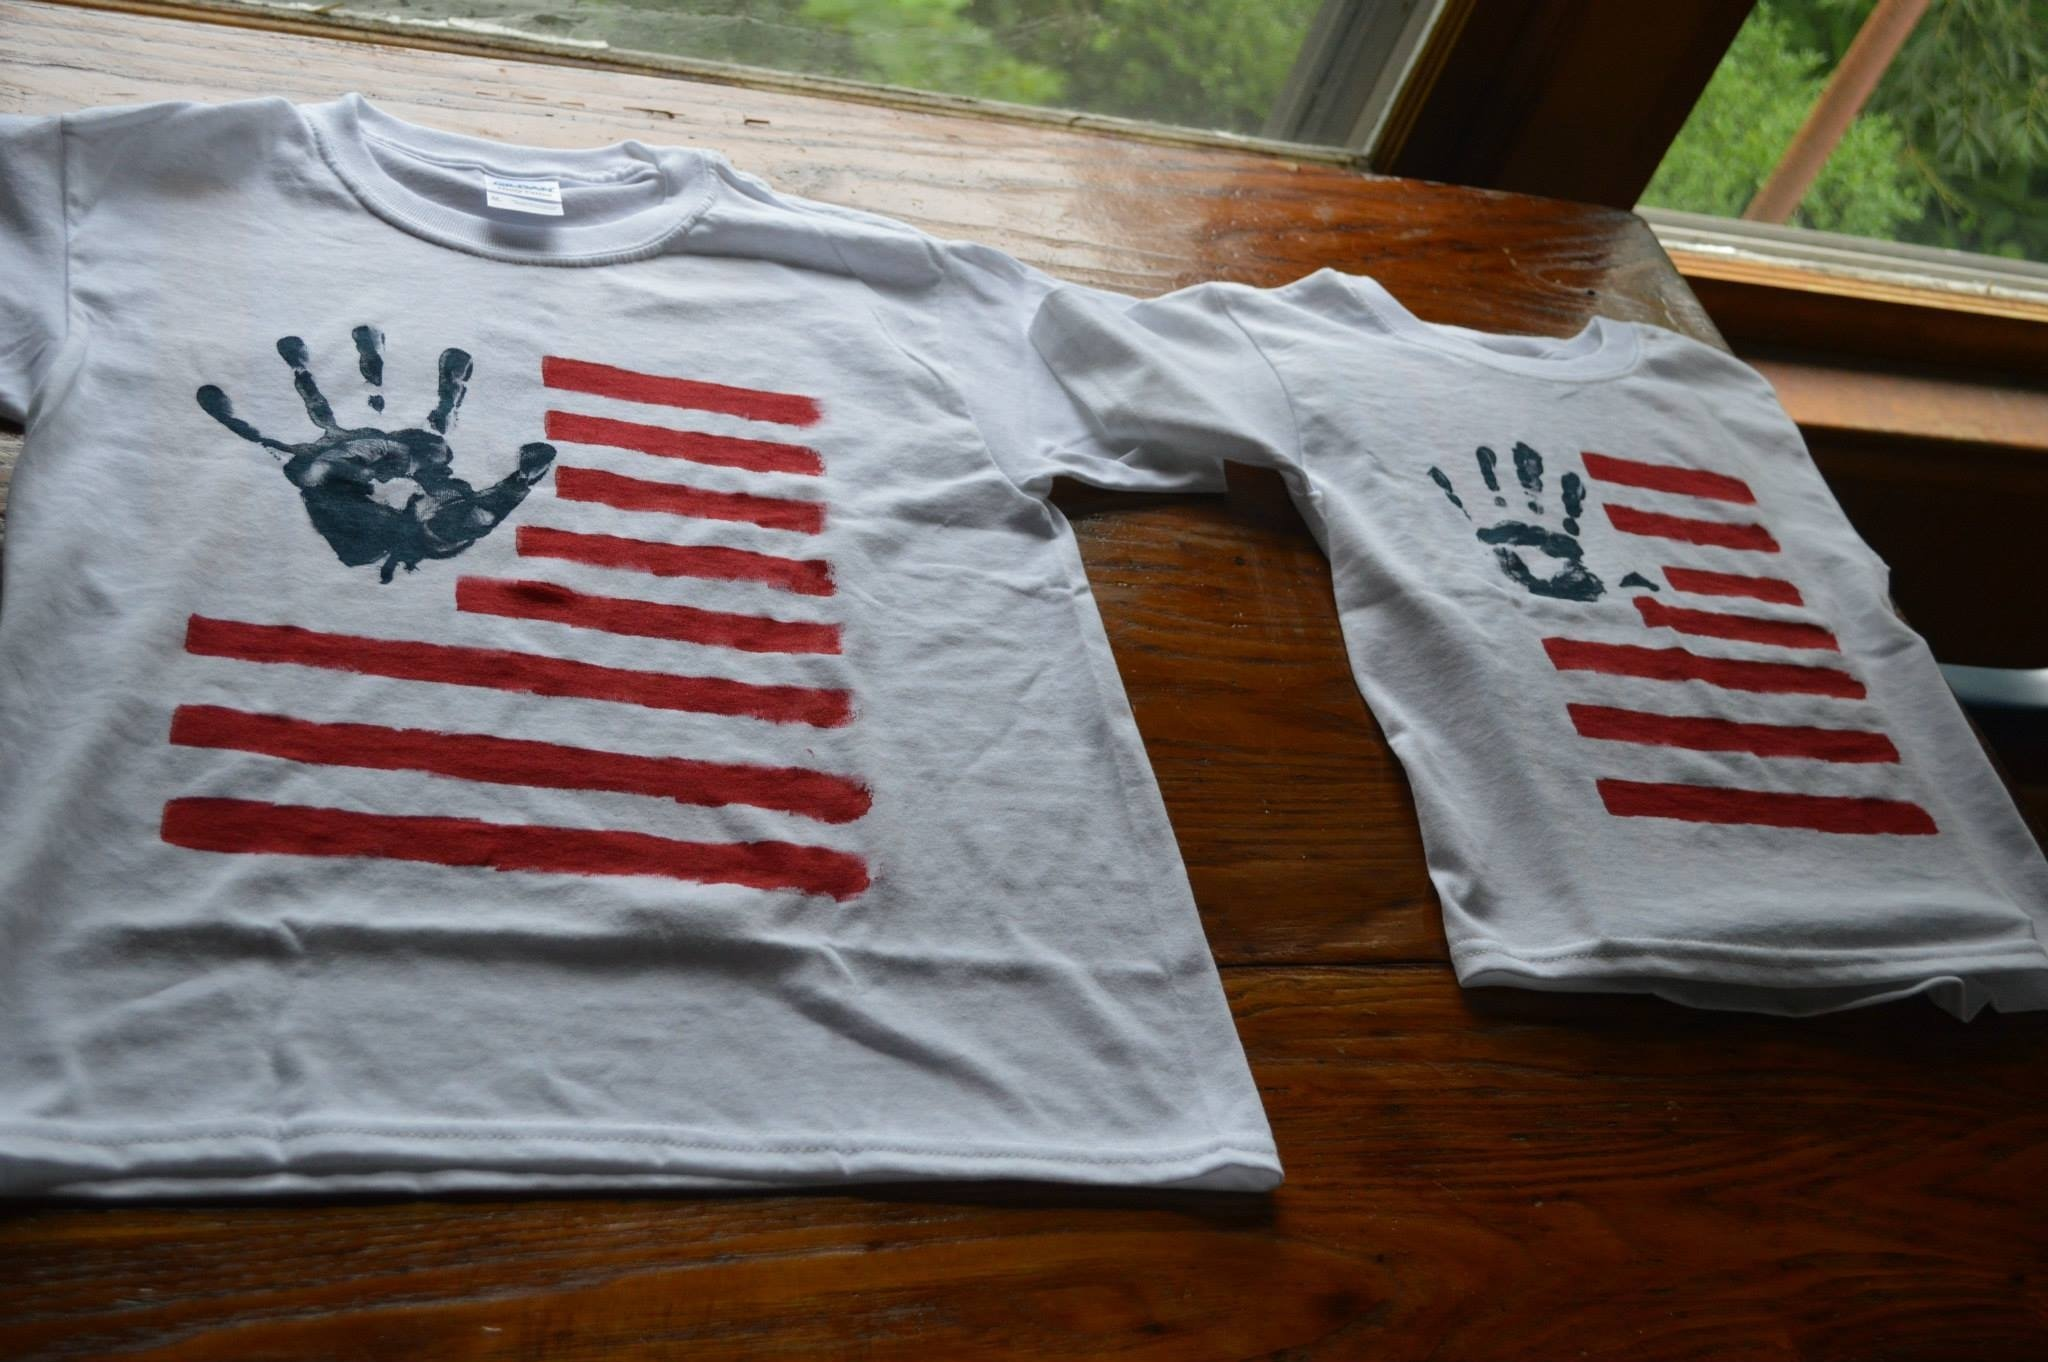 10 Wonderful 4Th Of July T Shirt Ideas pin worthy 4th of july party ideas hatchett design remodel